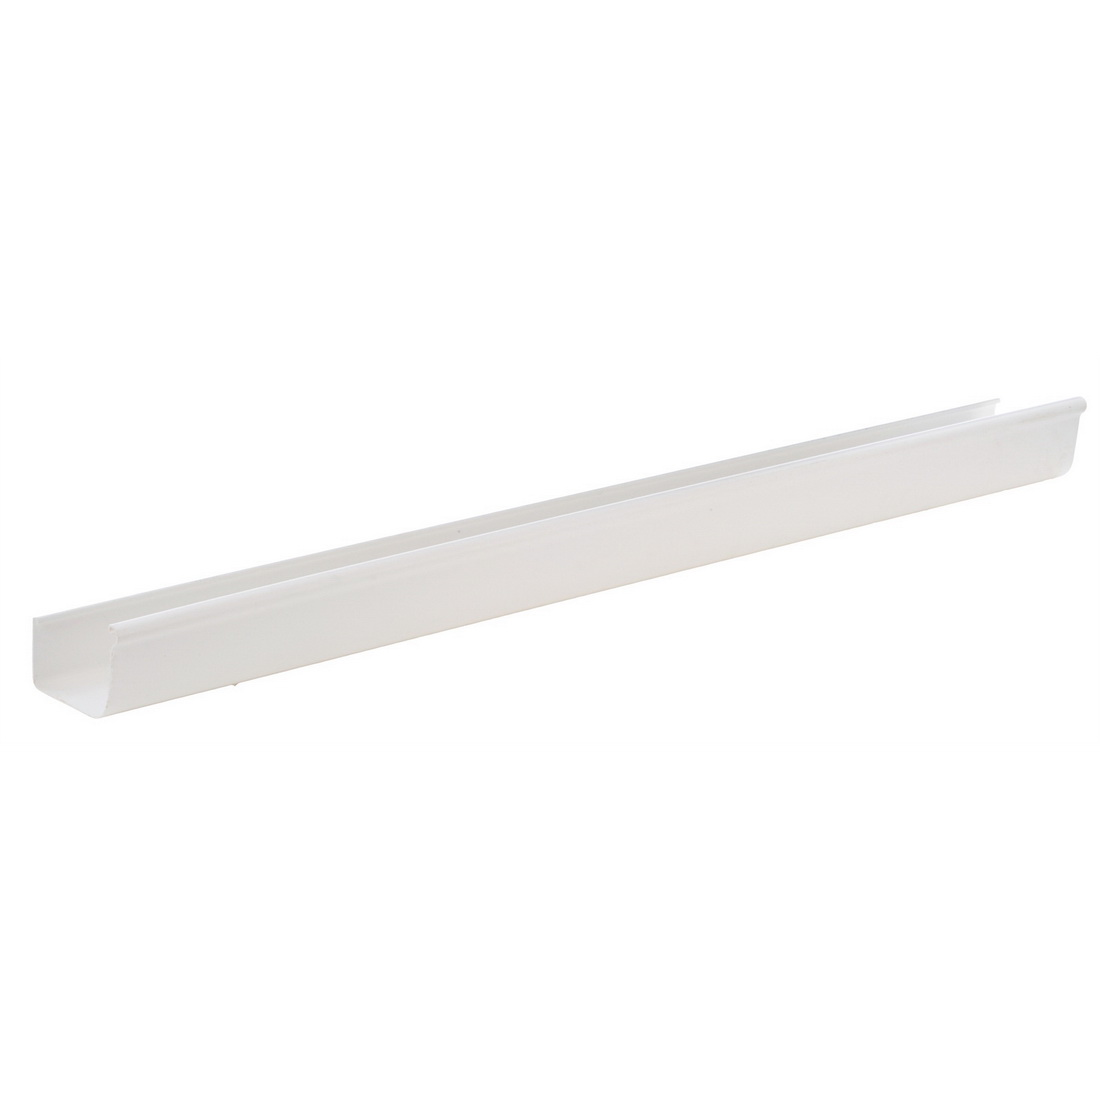 Marley Stormcold Spouting 3 m x 123 mm Unplasticised PVC White MS1.3